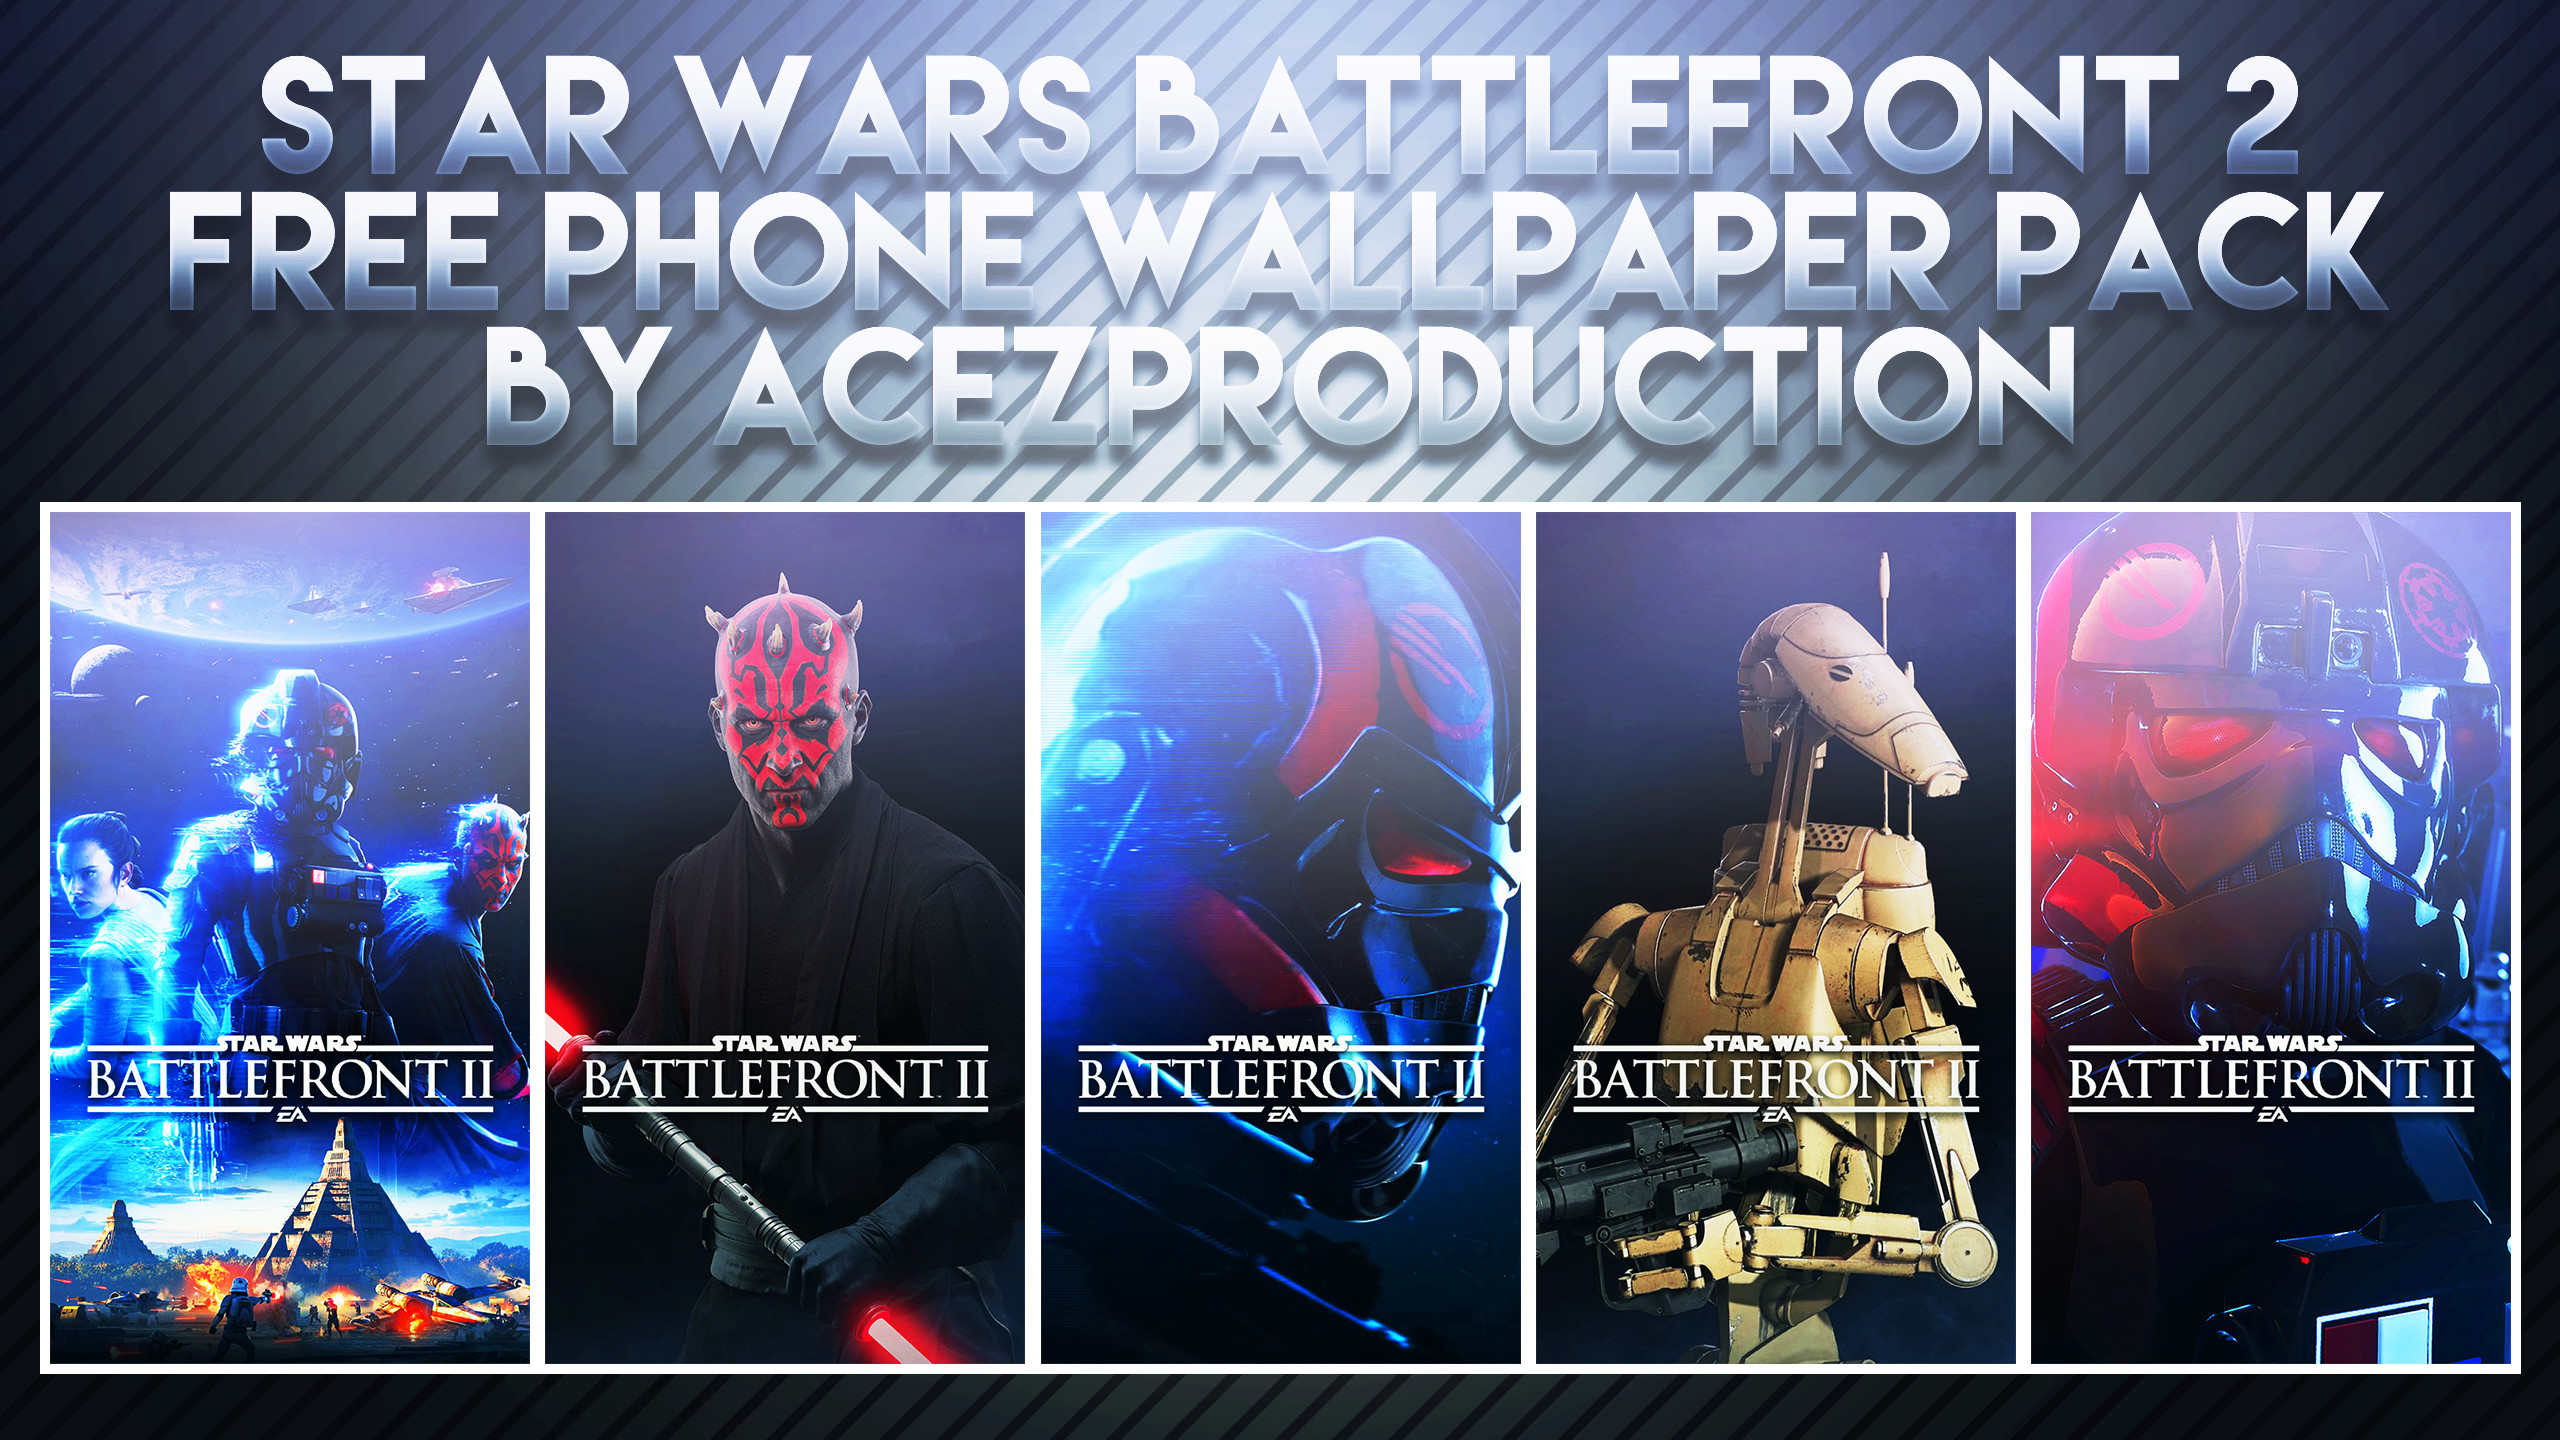 … Free Phone Wallpapers – Star Wars Battlefront 2 by AcezProduction